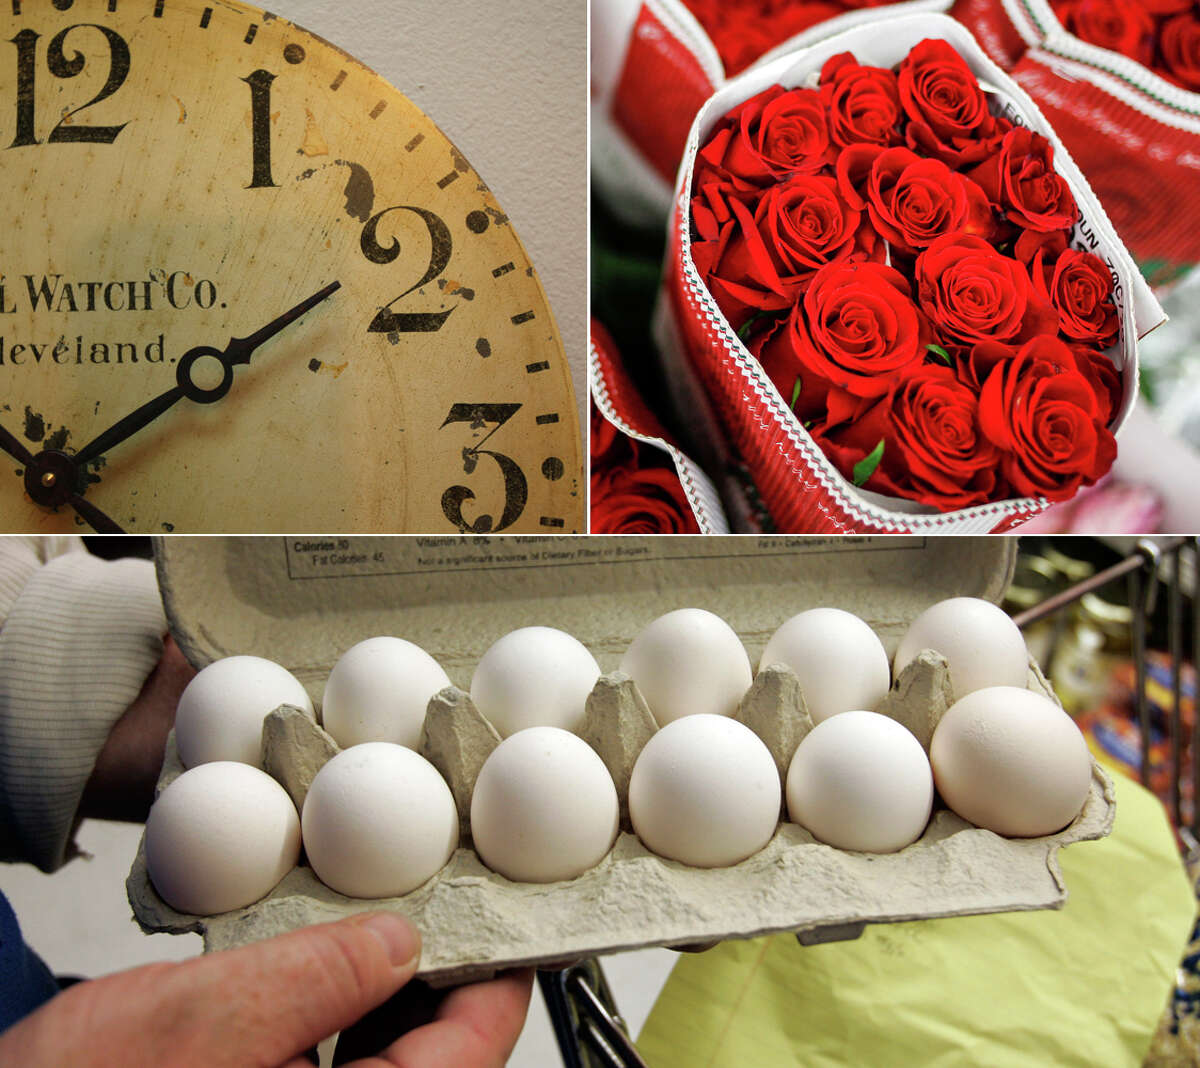 We totally understand if you have 12 on the brain today, what with it marking that unique 12/12/12 on the calendar. But there's something special about that number that goes beyond our day planners, much less our wall clocks, rose bouquets or egg cartons.Words by René A. Guzman, rguzman@express-news.net; Twitter: @reneguzPhotos, clockwise from top left: Clock in the guest room of Jean and Rob Blount. Helen L. Montoya, San Antonio Express-News; Roses wait to be placed in a Valentine's Day arrangement at Village Flowery in Houston. Michael Paulsen, Houston Chronicle; A grocery clerk checks a dozen eggs at JJ&F Market in Palo Alto, Calif. Paul Sakuma, Associated Press.